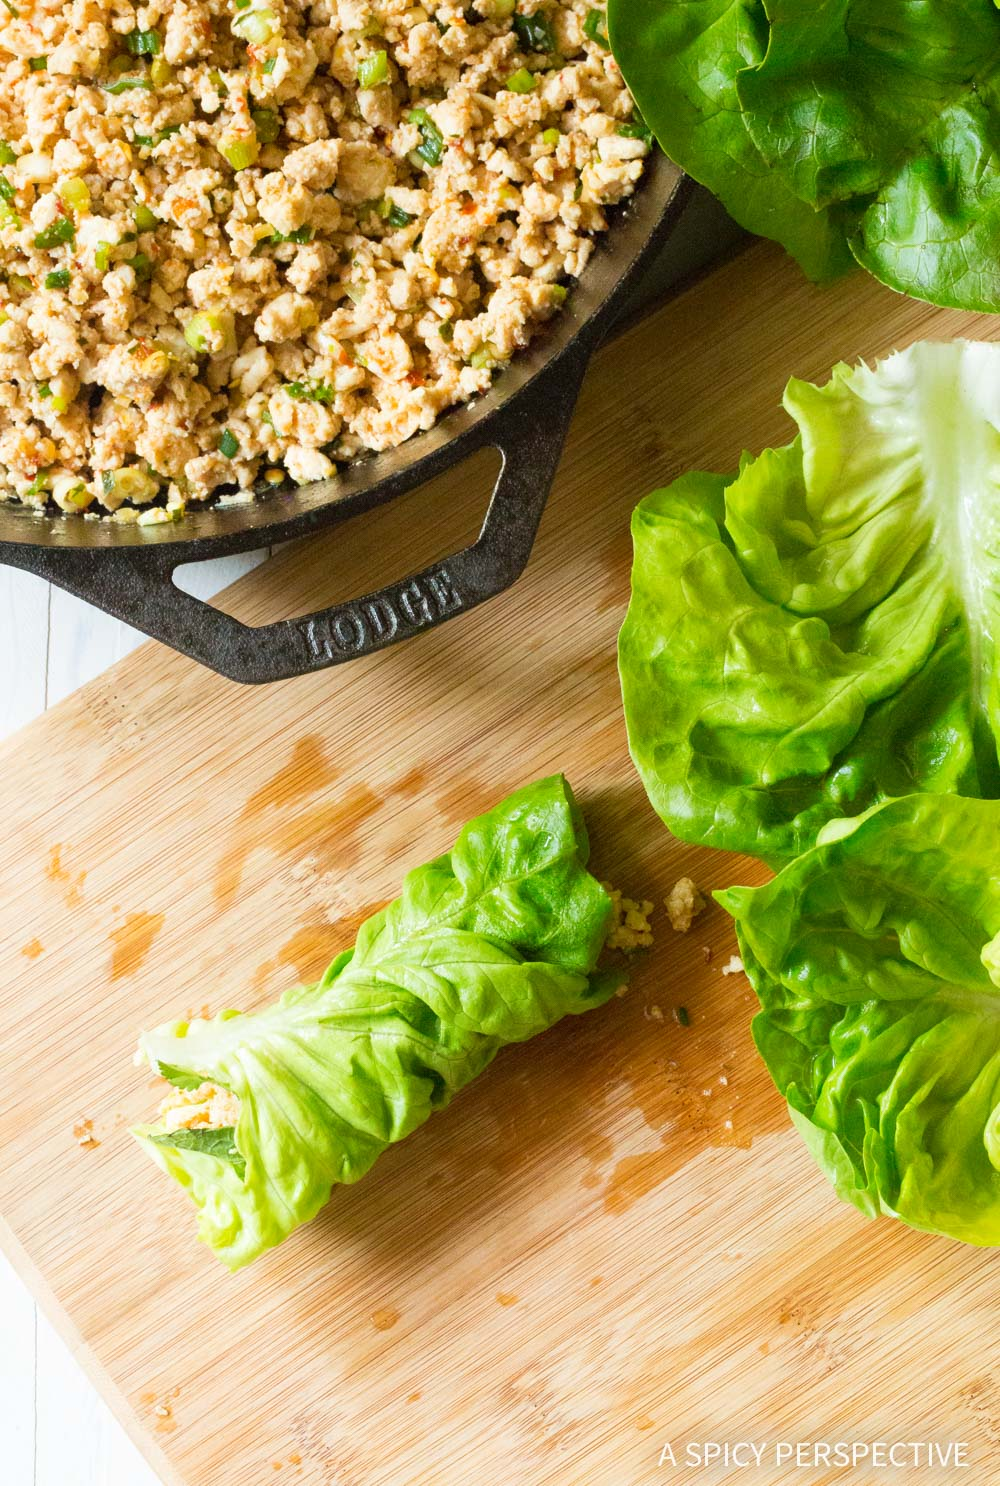 Healthy Keto Thai Larb Rolls Recipe #ASpicyPerspective #ketogenic #paleo